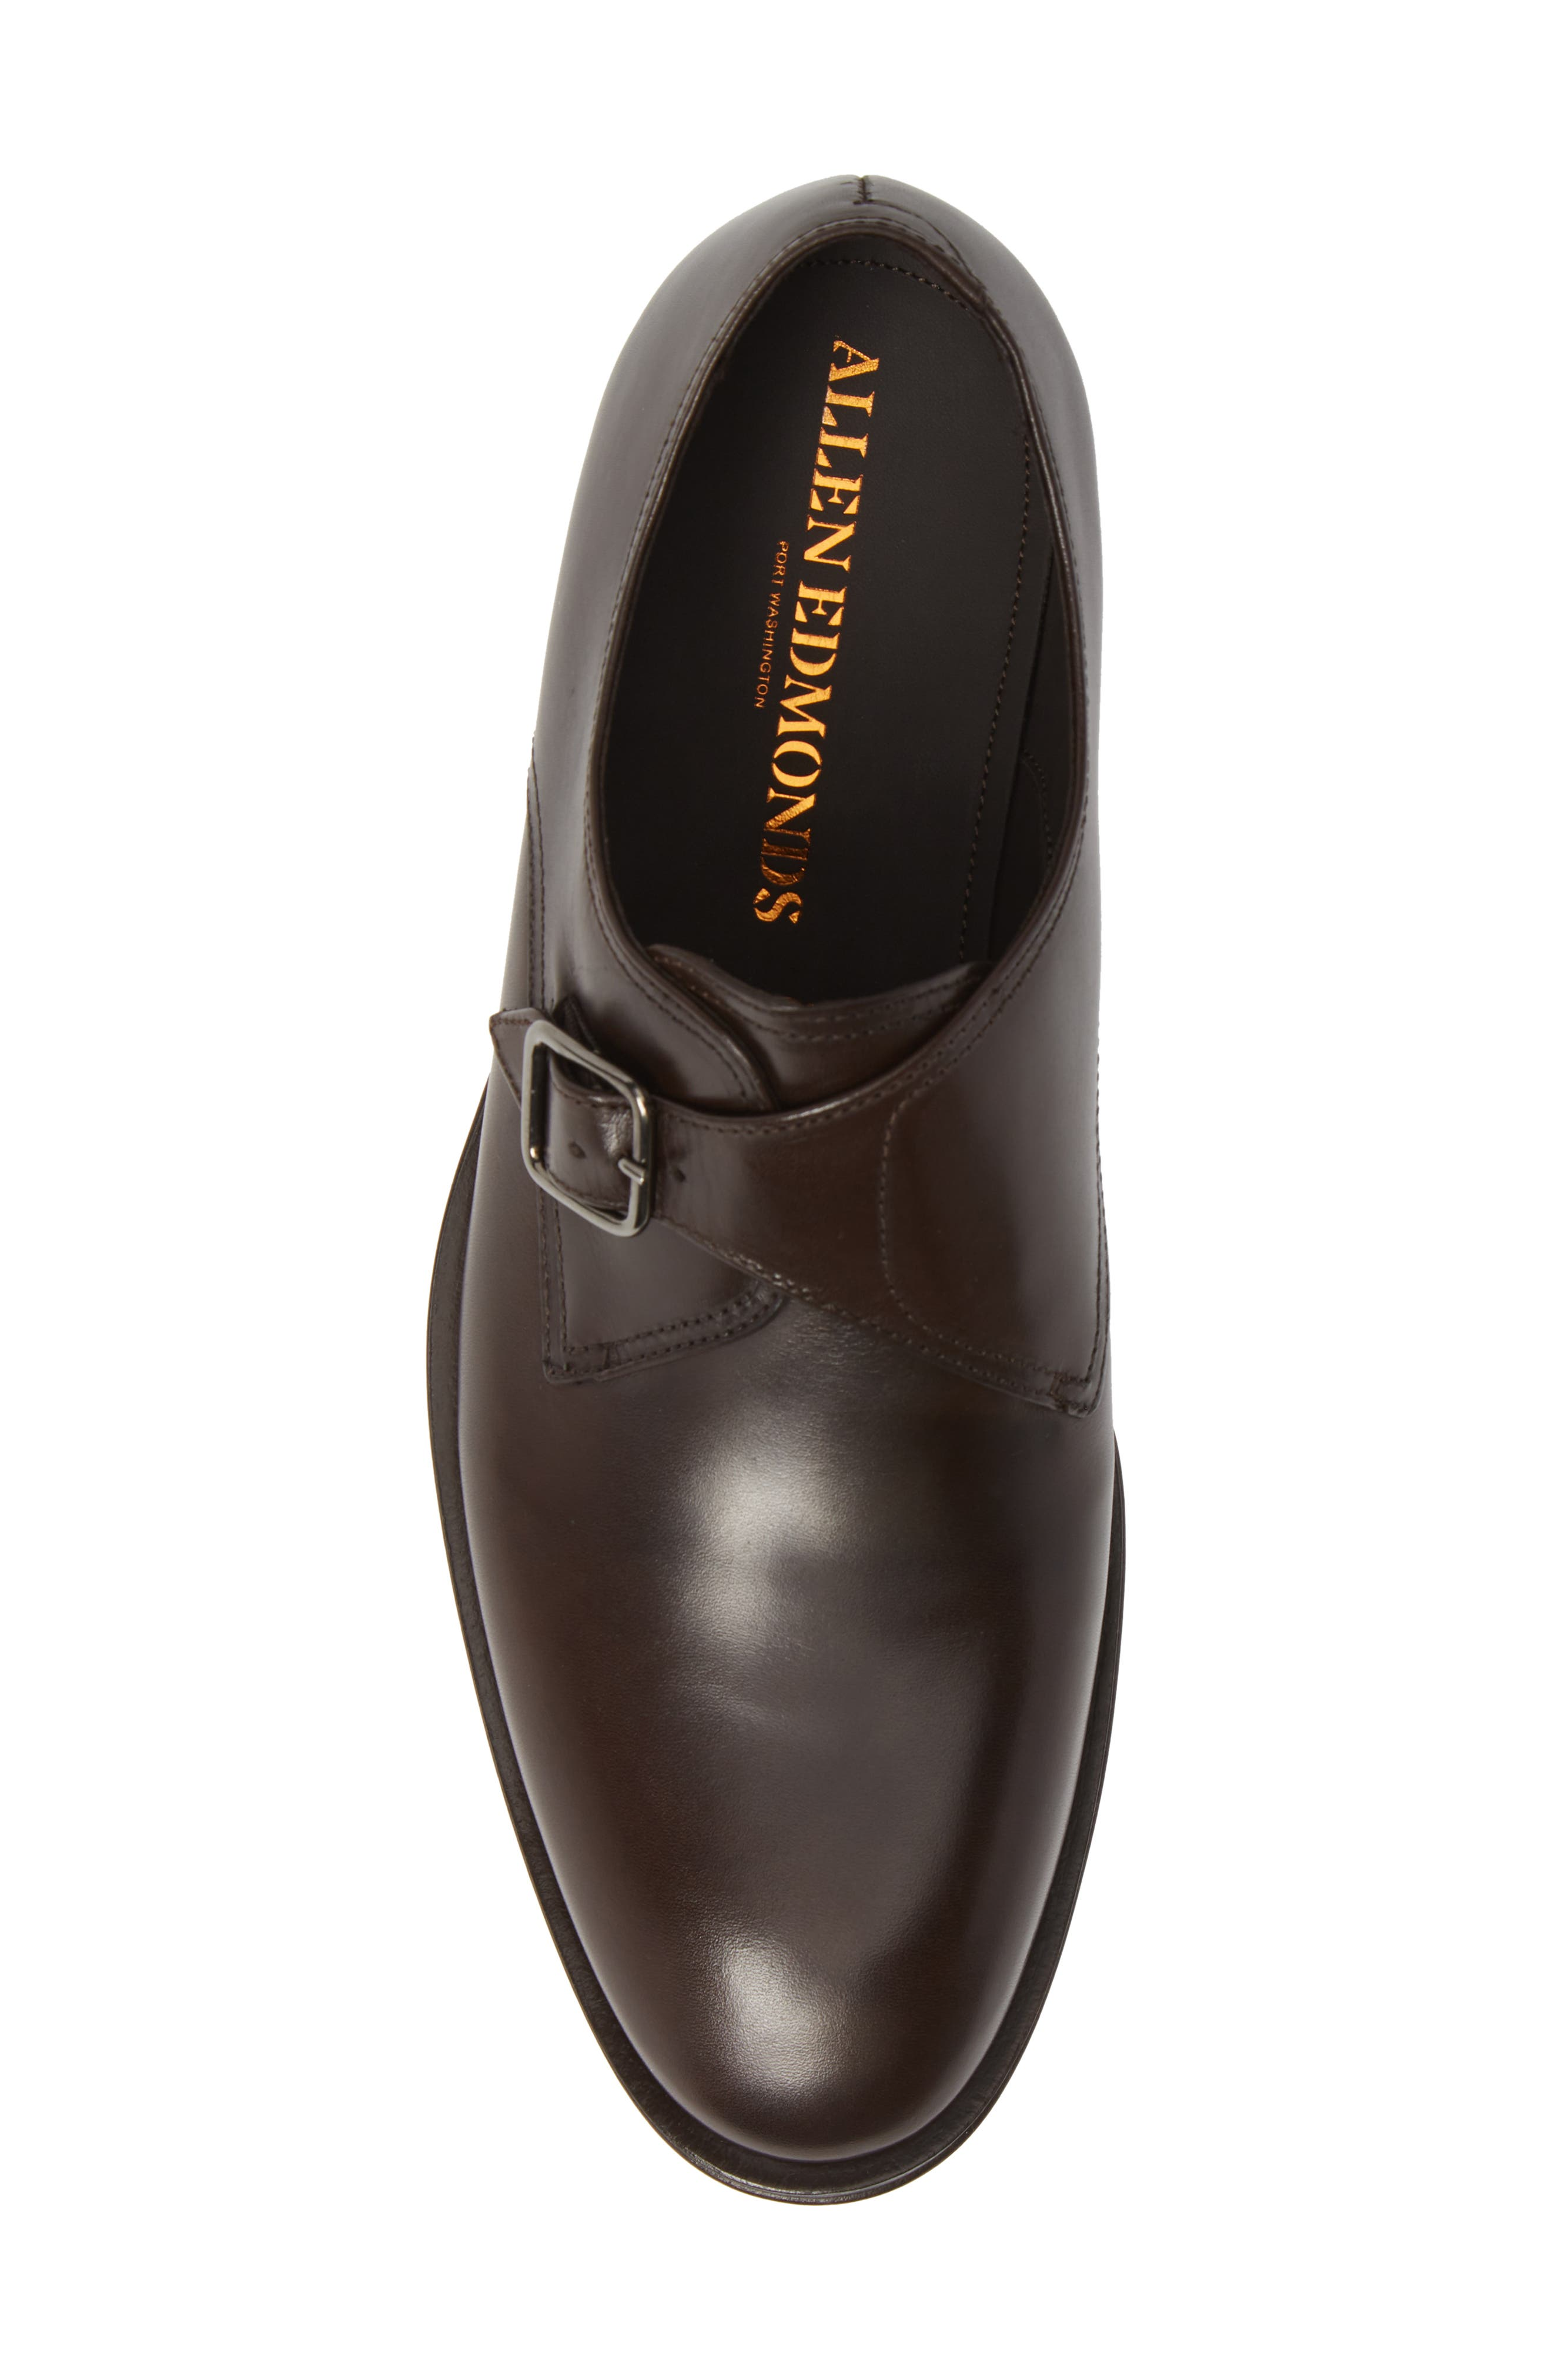 ALLEN EDMONDS, Umbria Monk Strap Shoe, Alternate thumbnail 5, color, DARK BROWN LEATHER